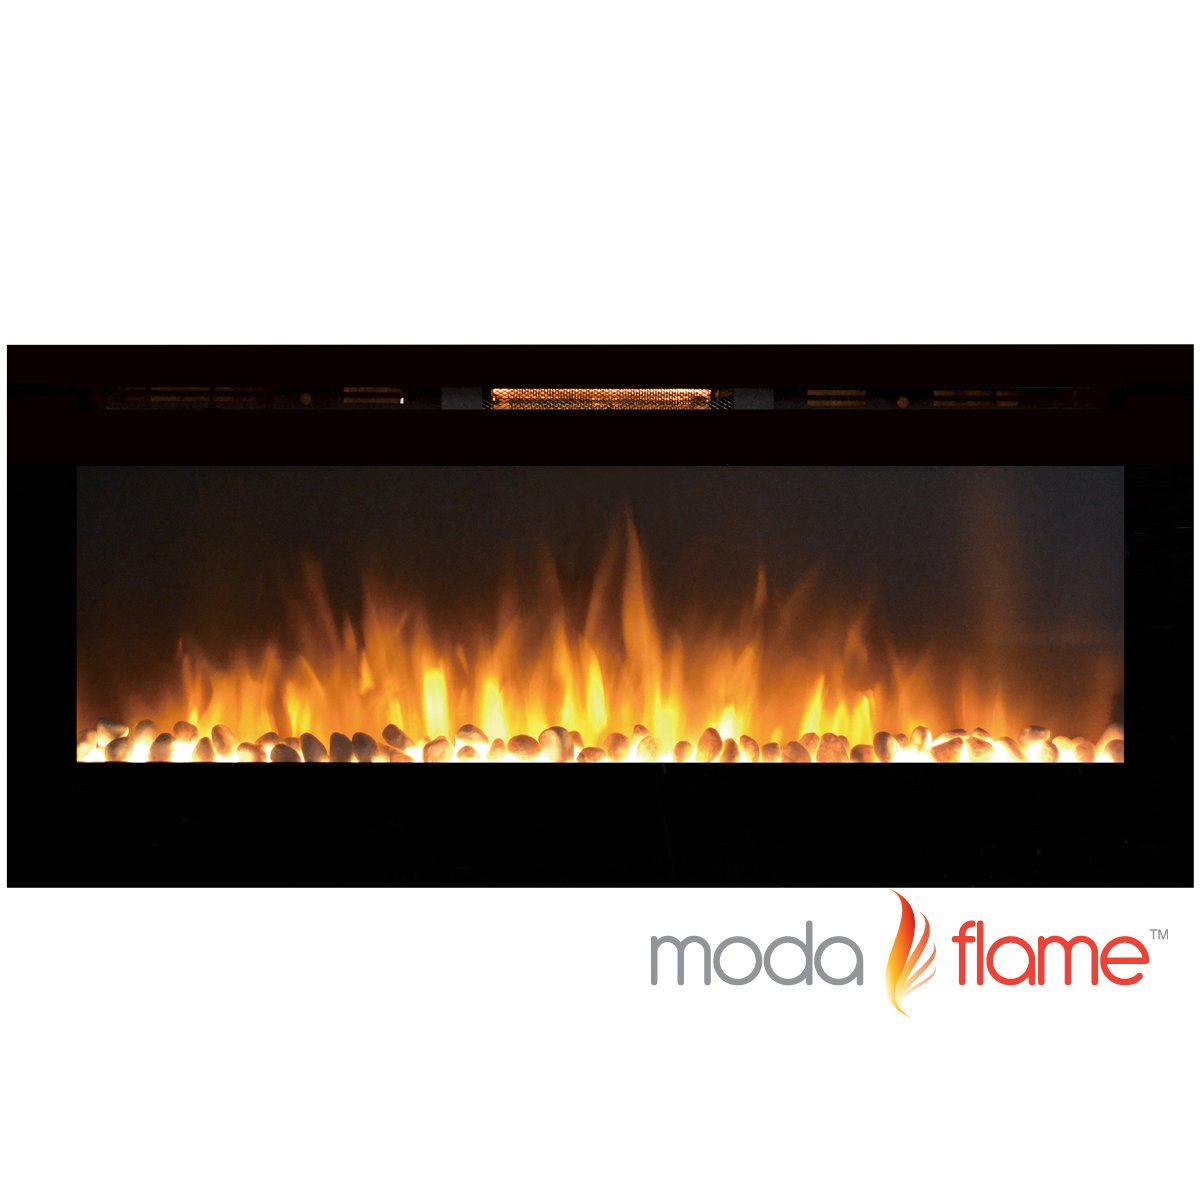 MFE5048WS 50'' Cynergy Built-In Wall Mounted Electric Fireplace - Pebble Stone